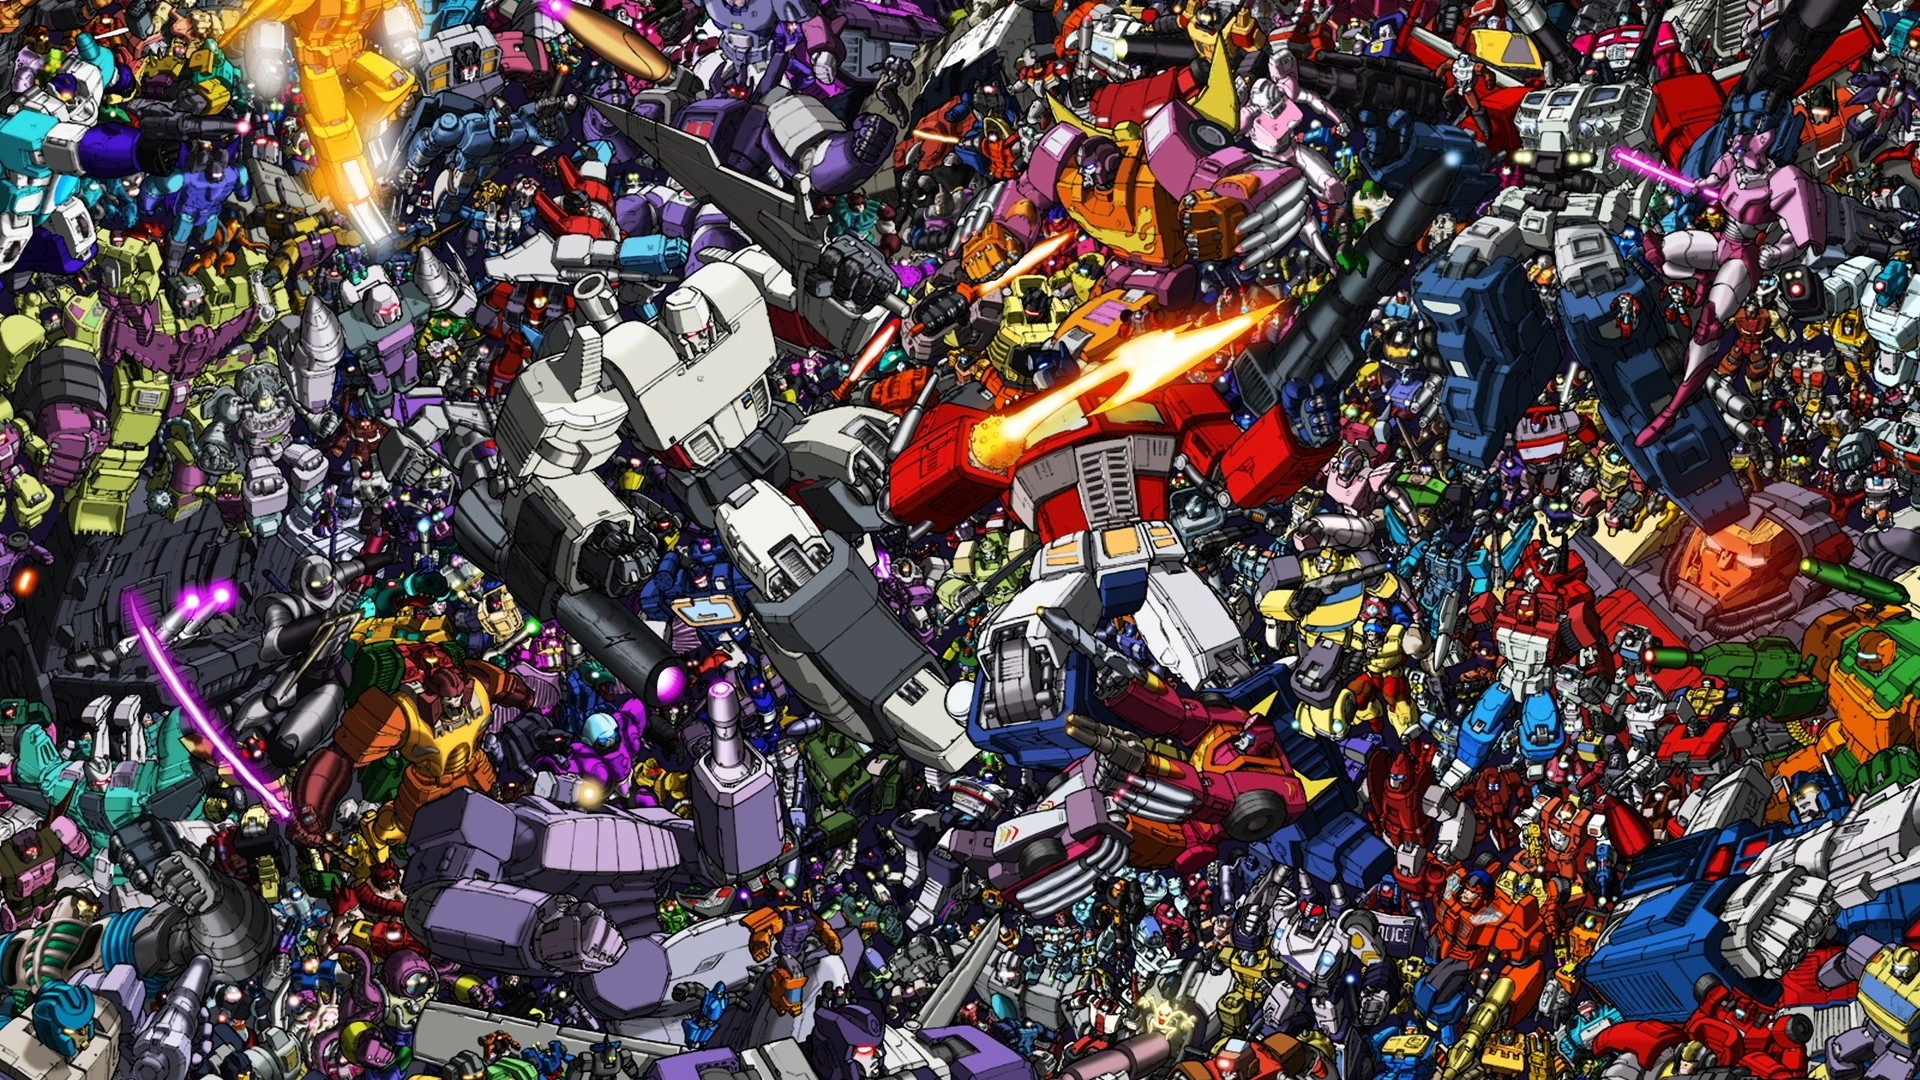 Hd collage of transformers desktop background hd wallpapers - Transformers desktop backgrounds ...